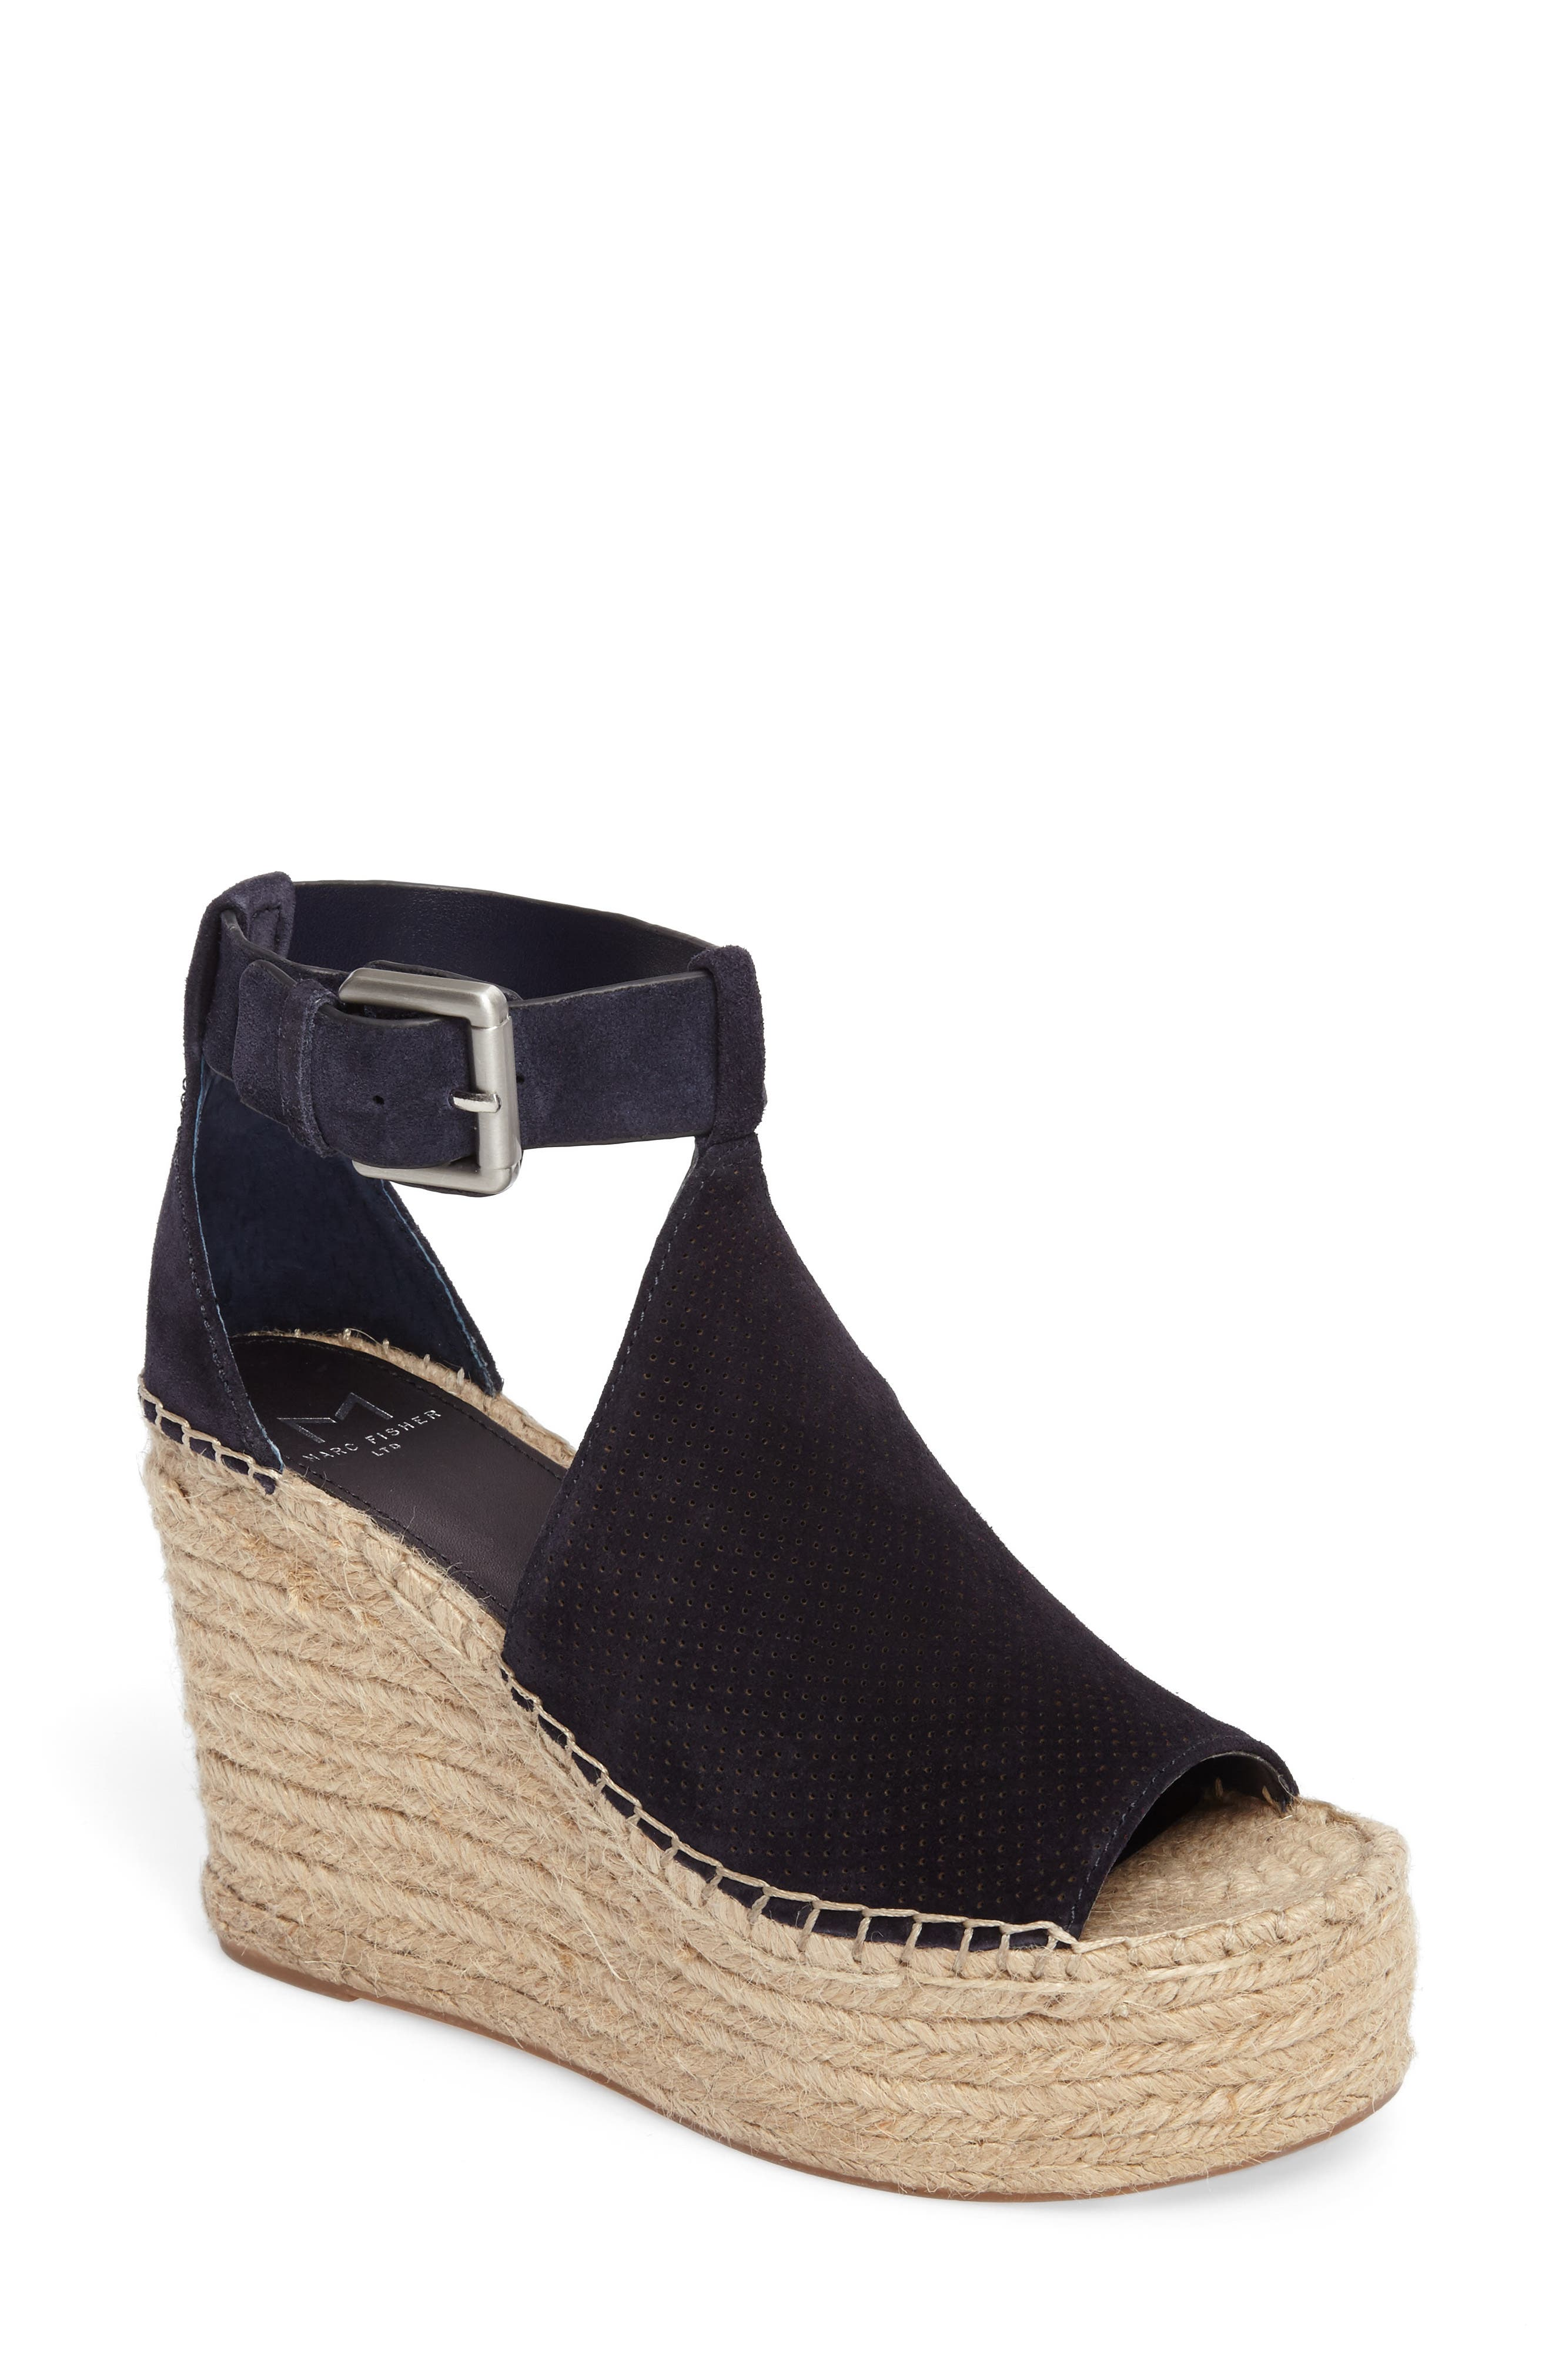 MARC FISHER LTD, Annie Perforated Espadrille Platform Wedge, Main thumbnail 1, color, 435